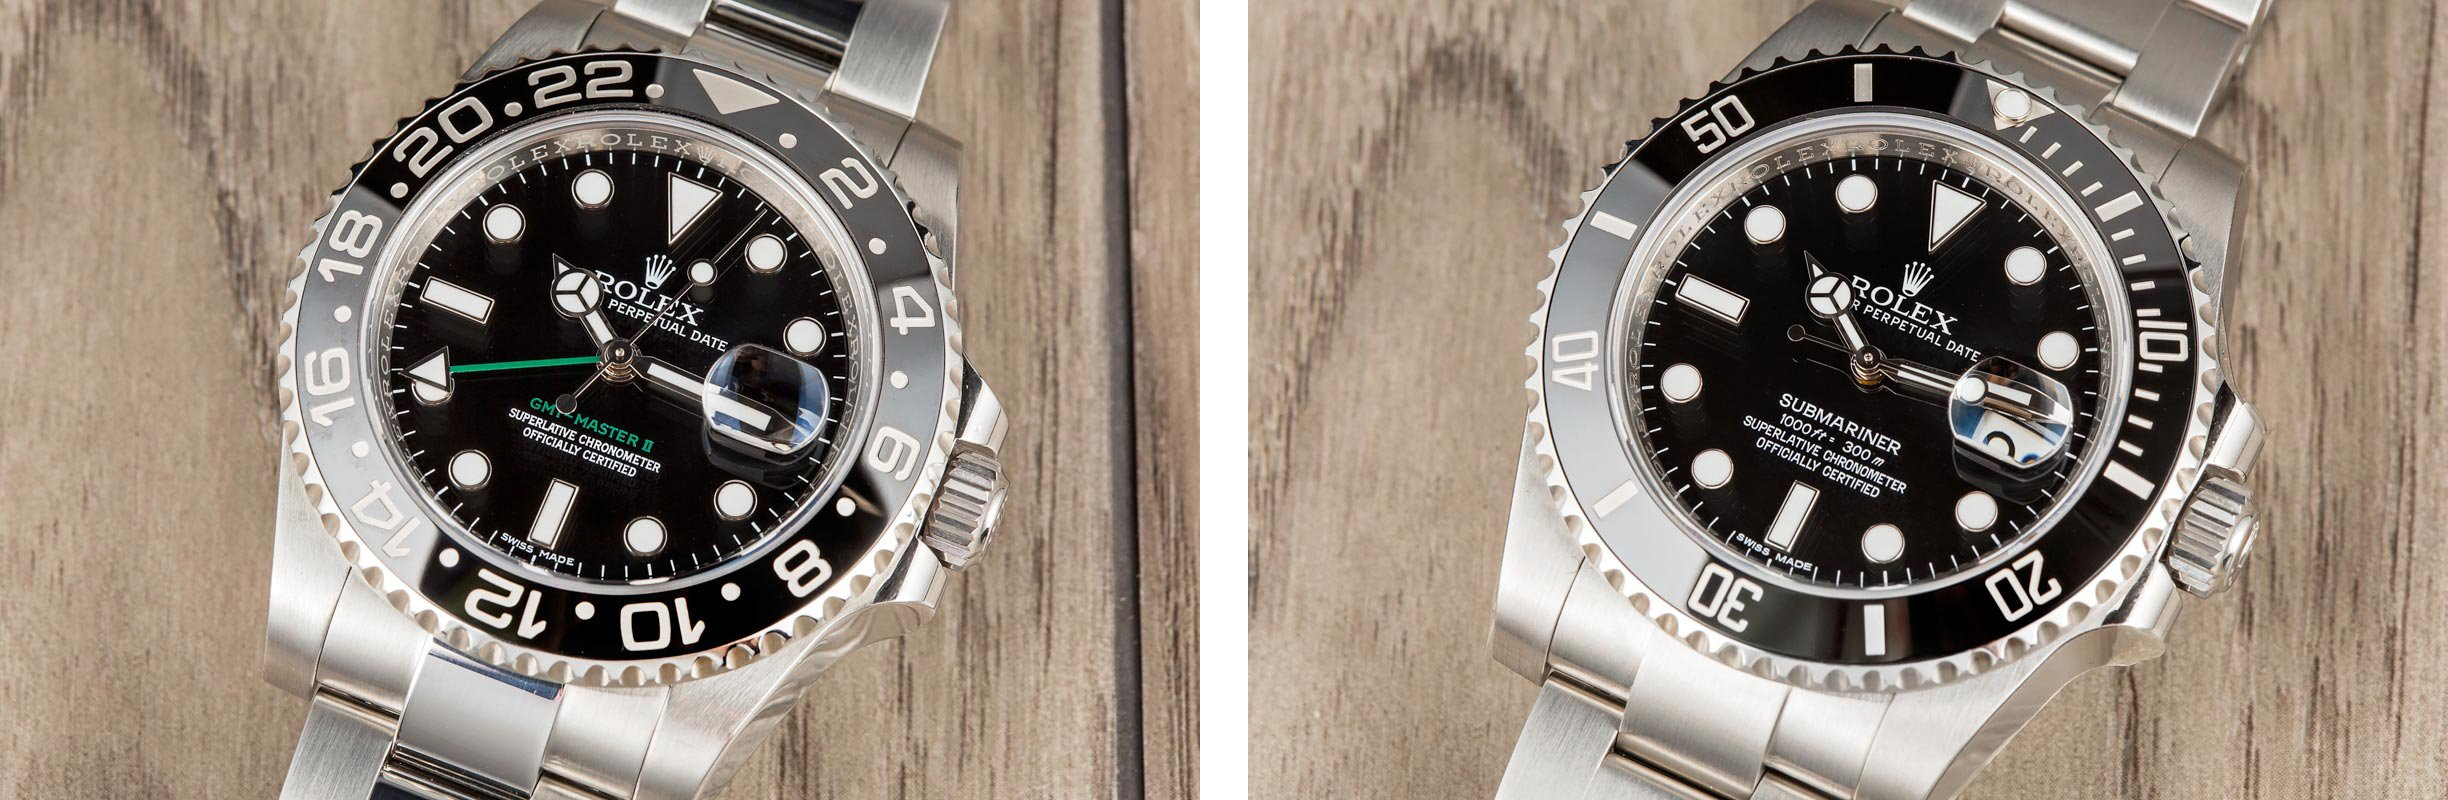 Submariner vs GMT-Master II